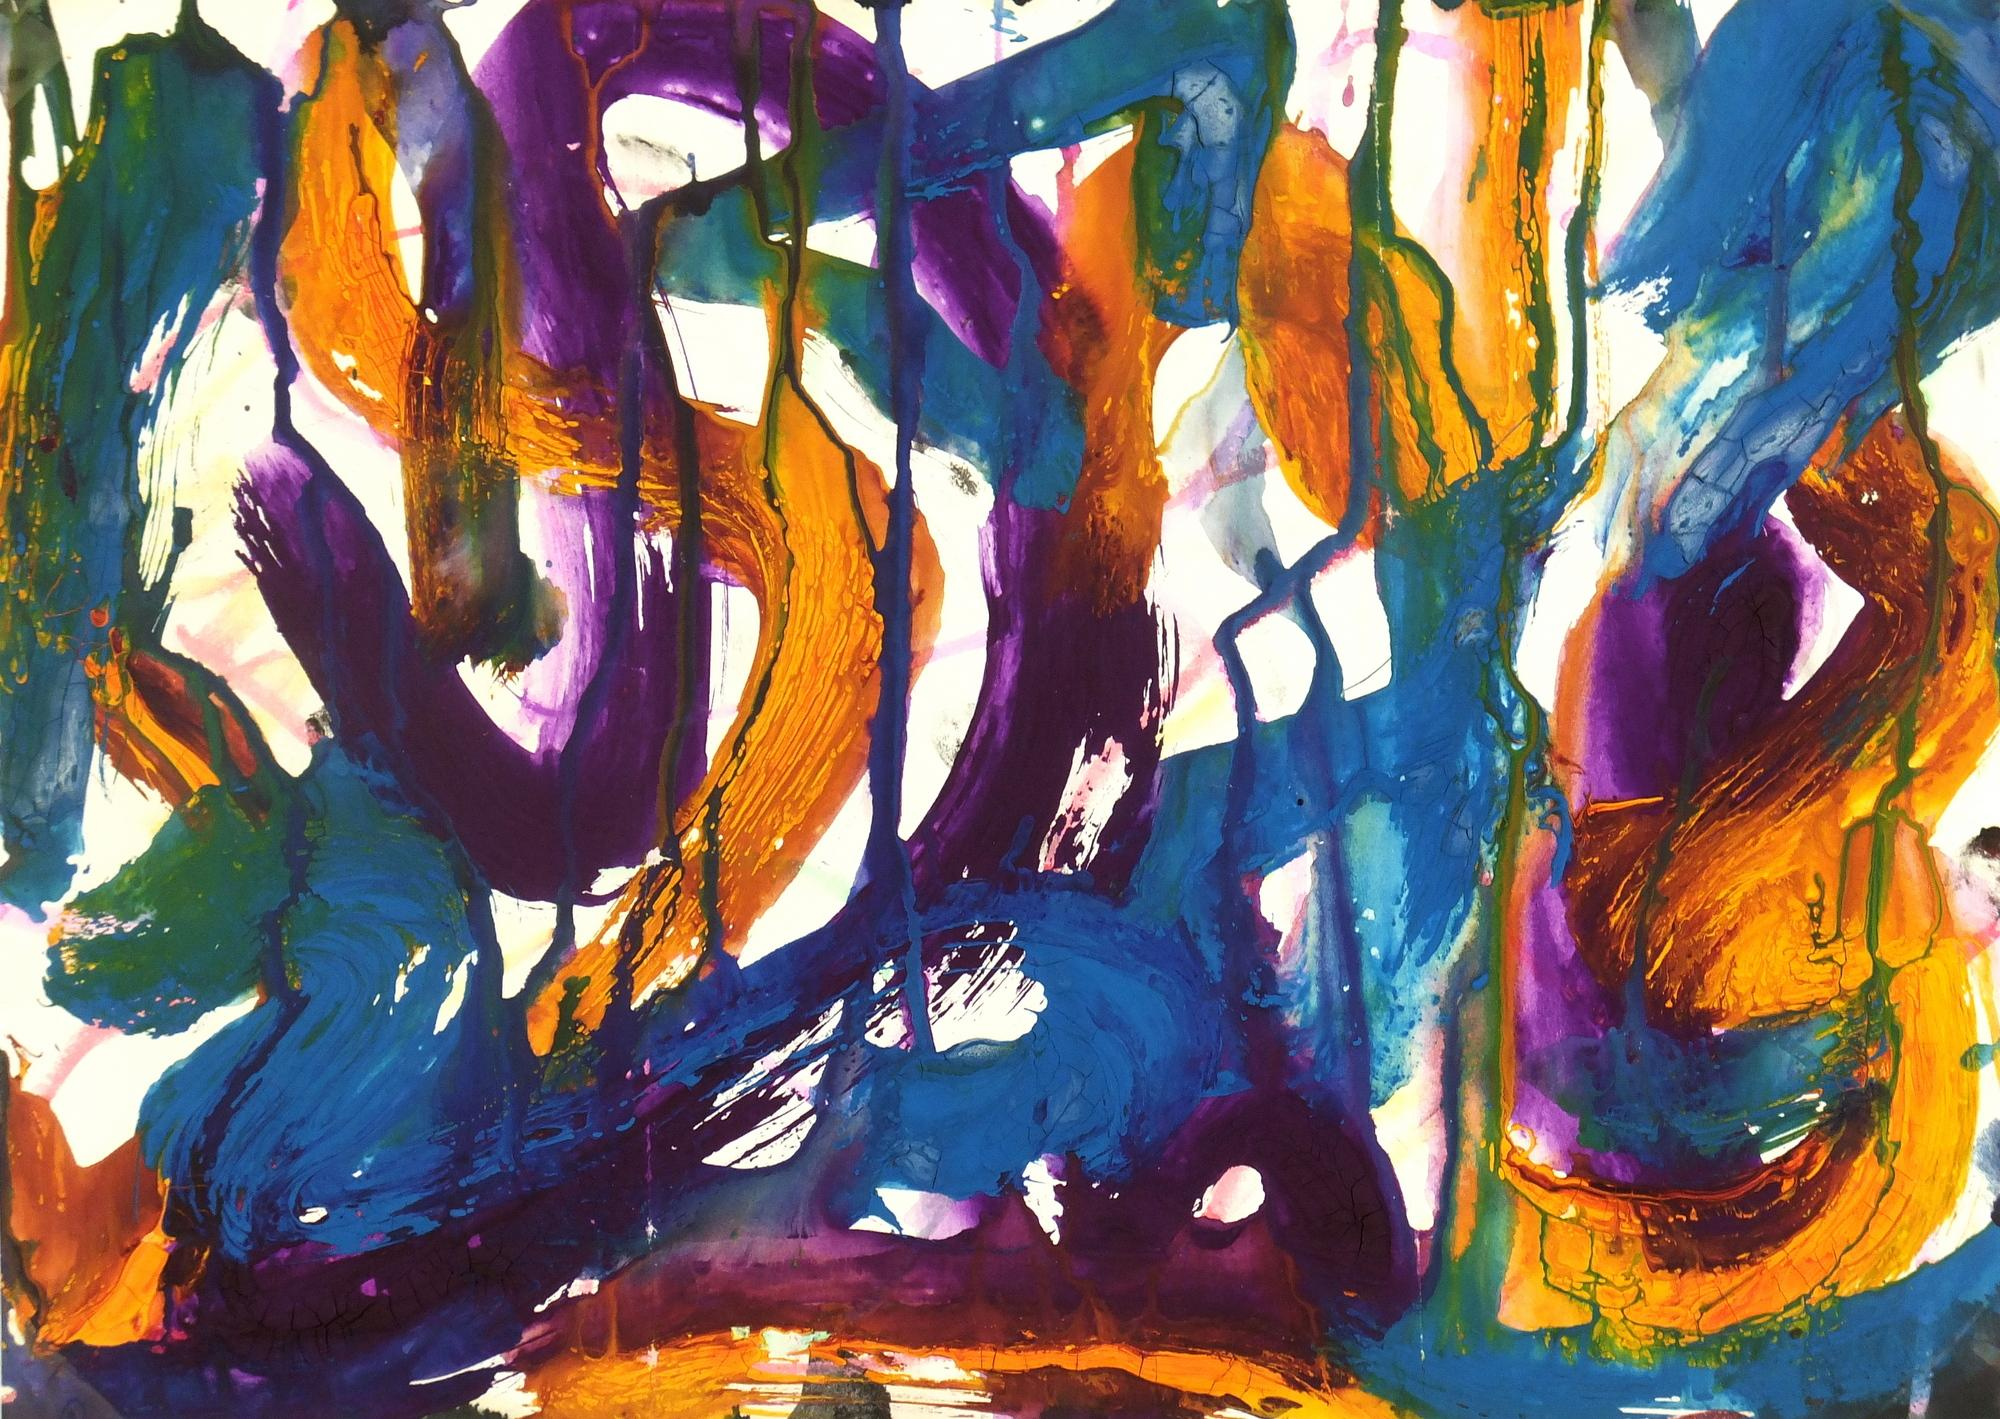 Vibrant Color Abstract Twists and Turns